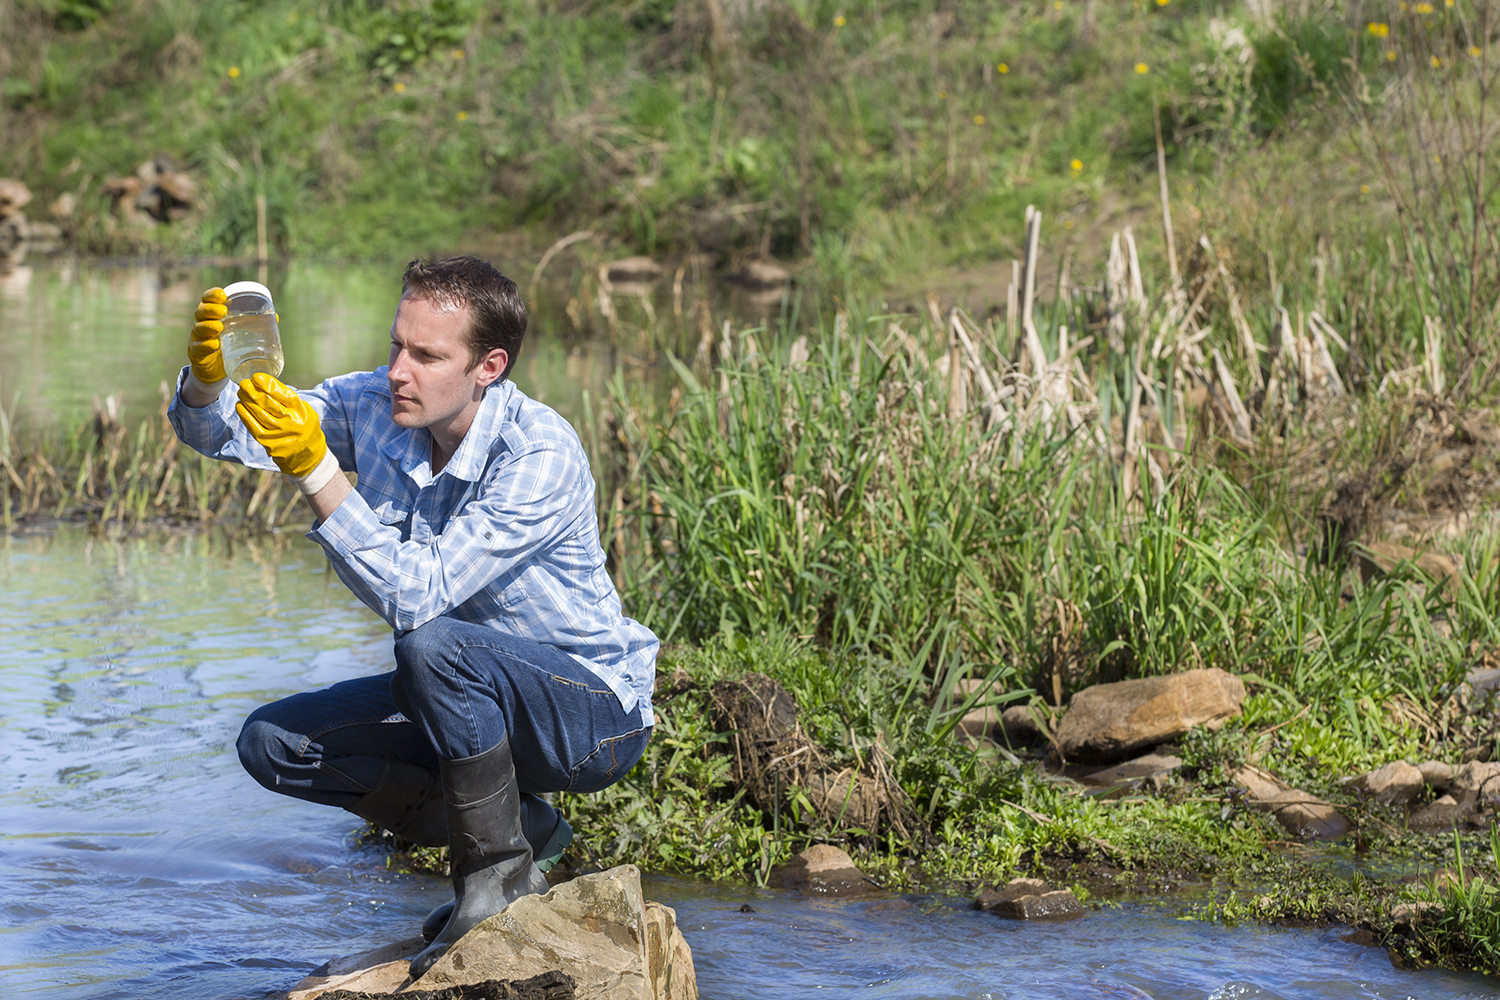 Researcher looks at water sample near a river